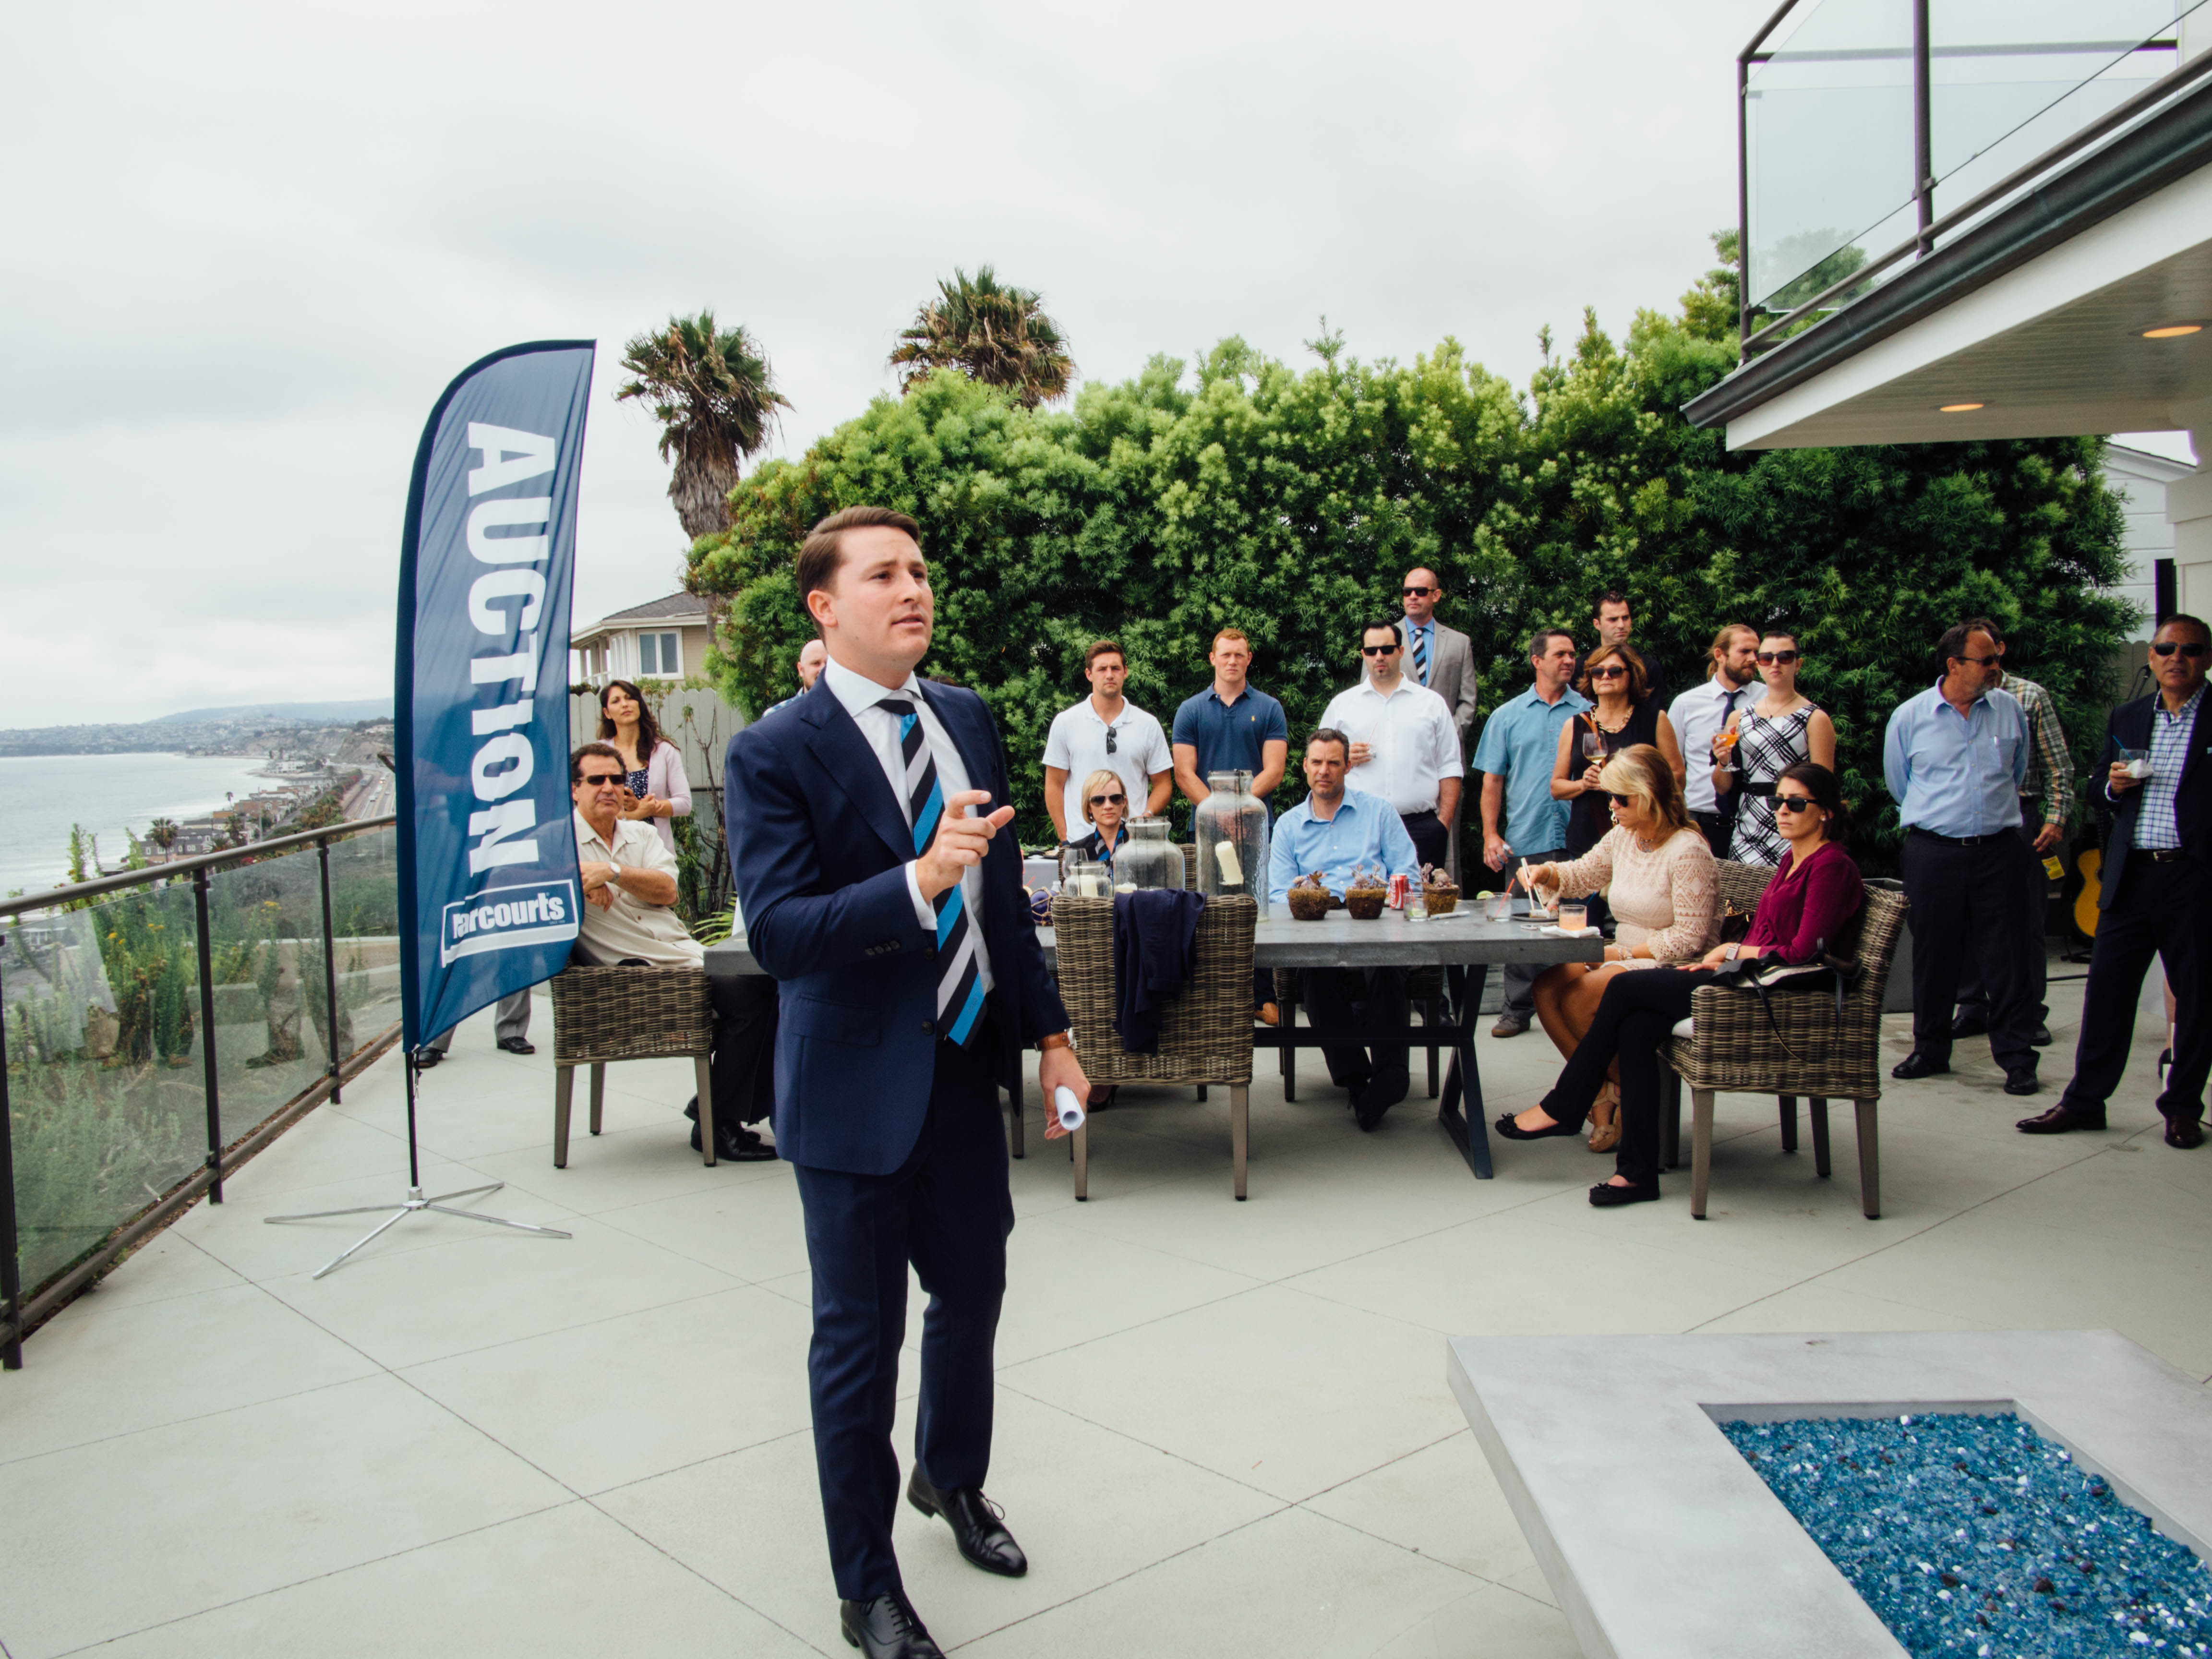 Harcourts Australian auction platform taking off in the States